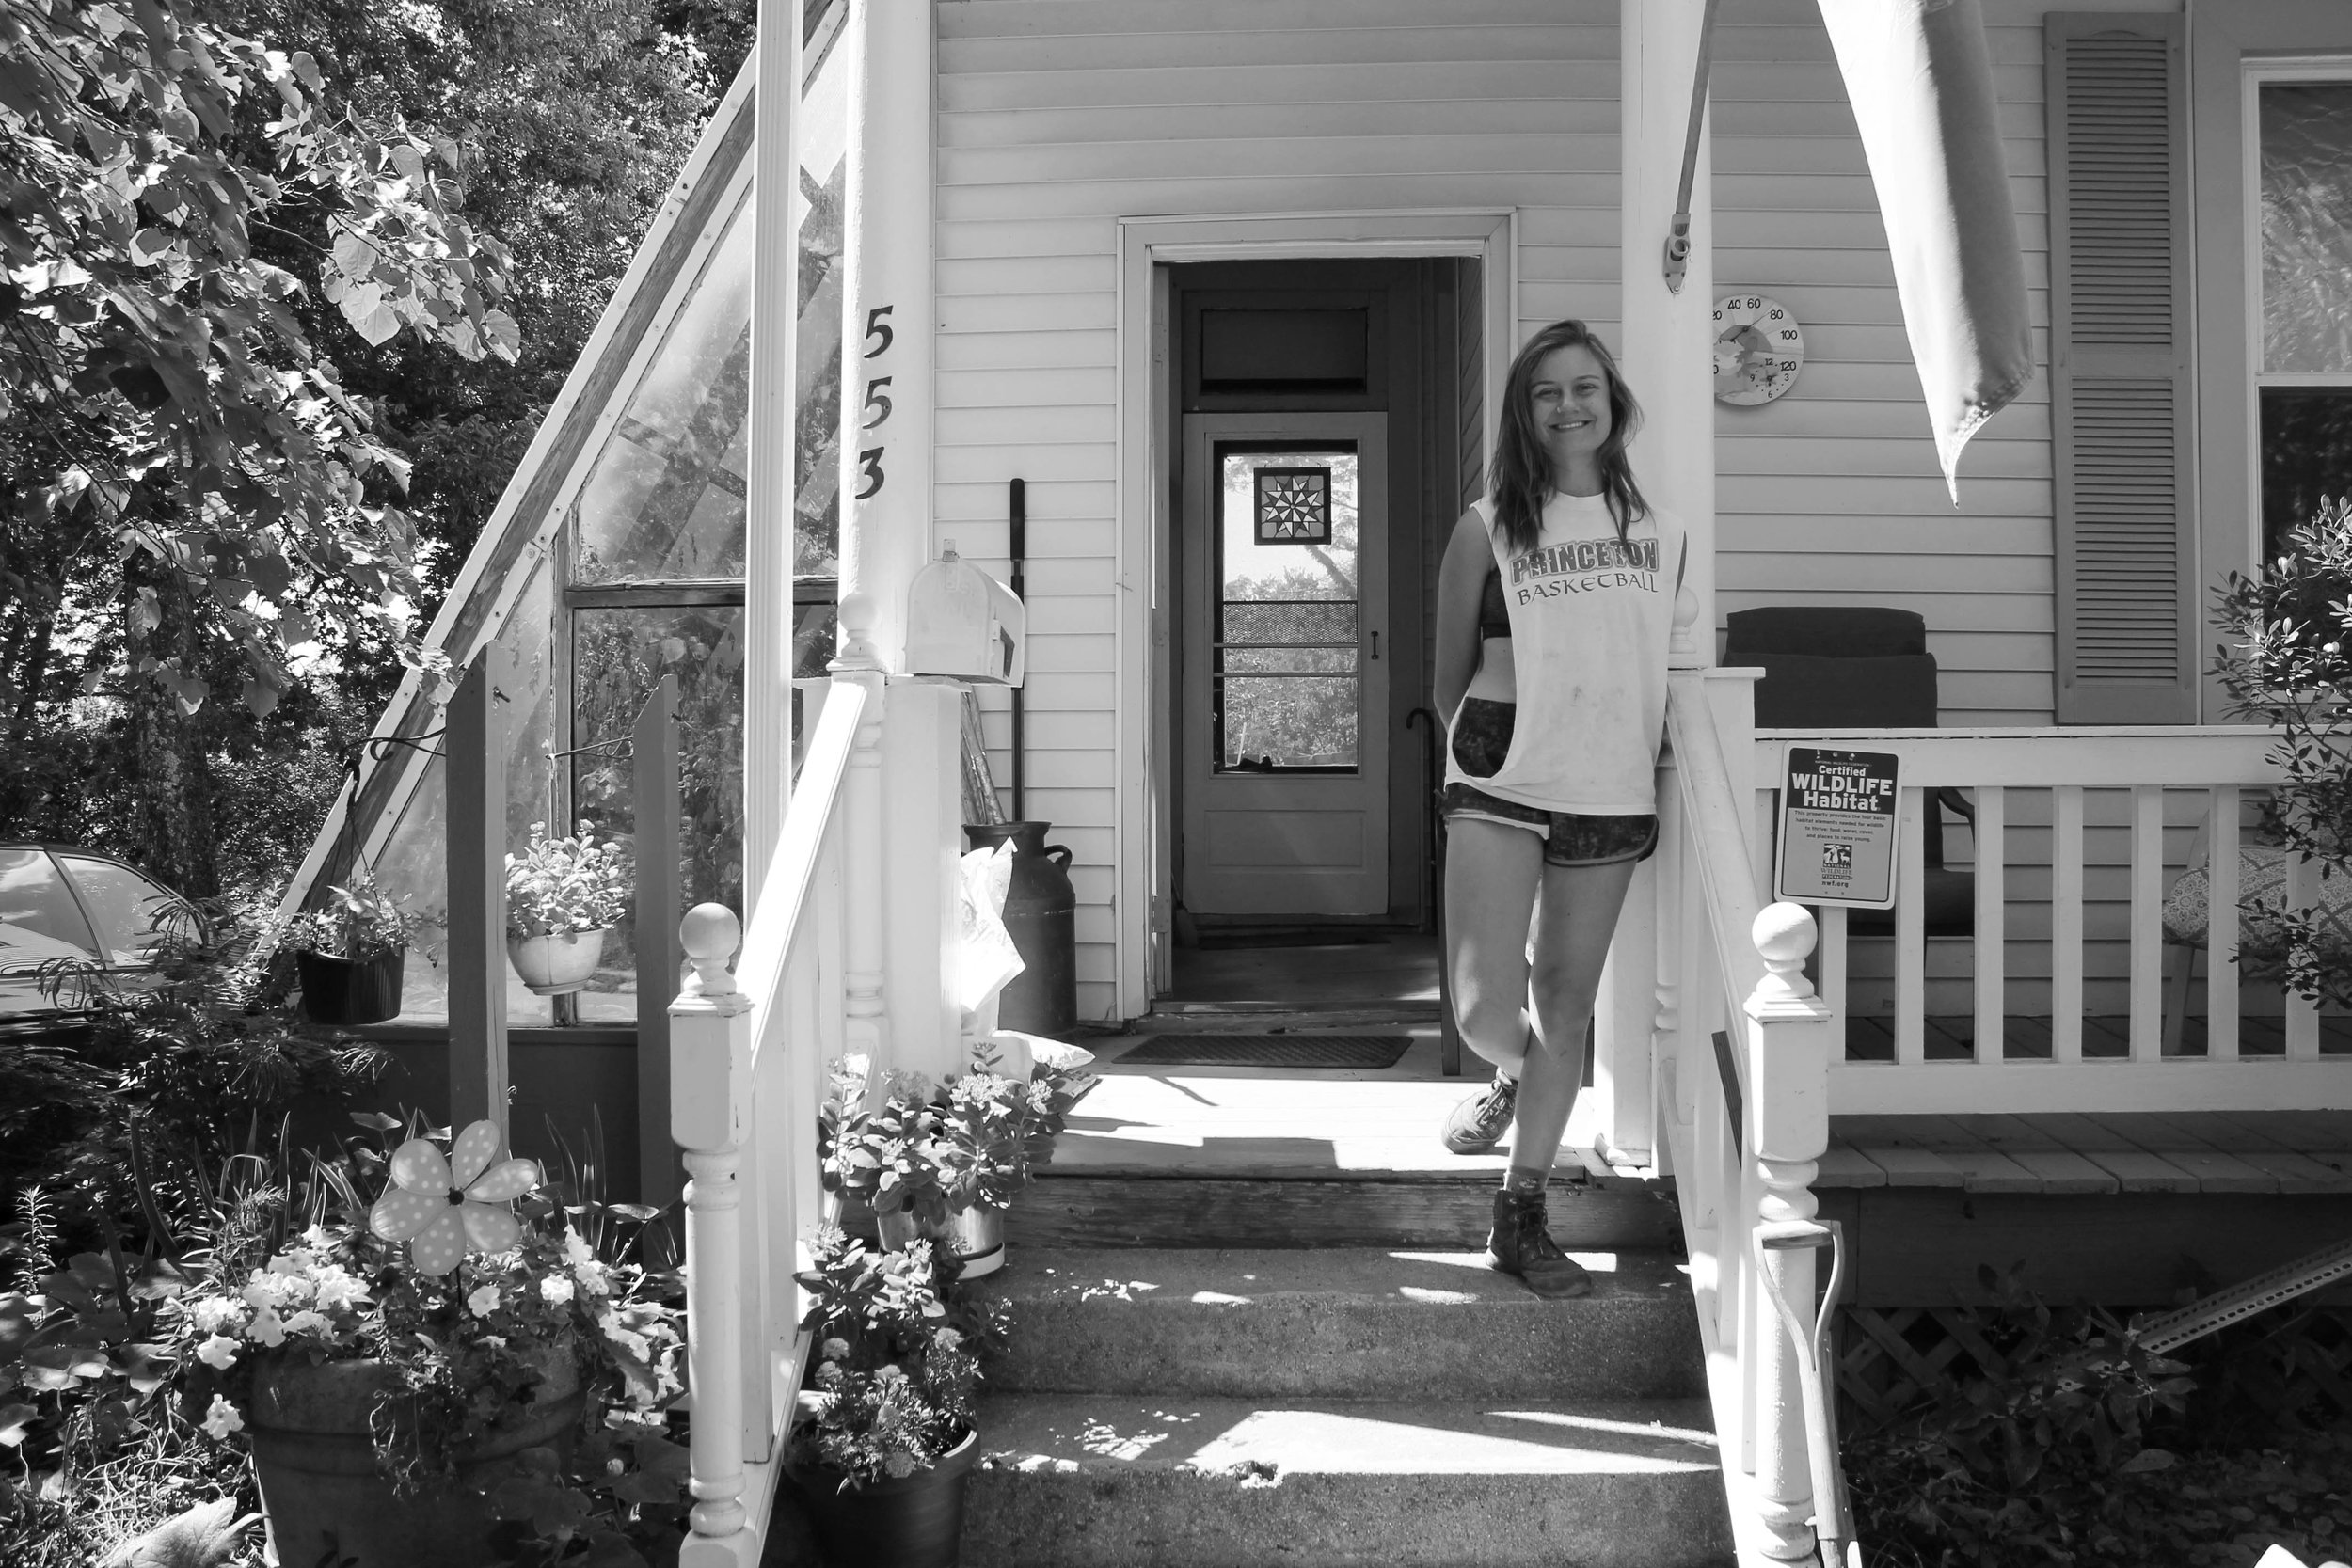 Leah Rutz stands in front of her house.